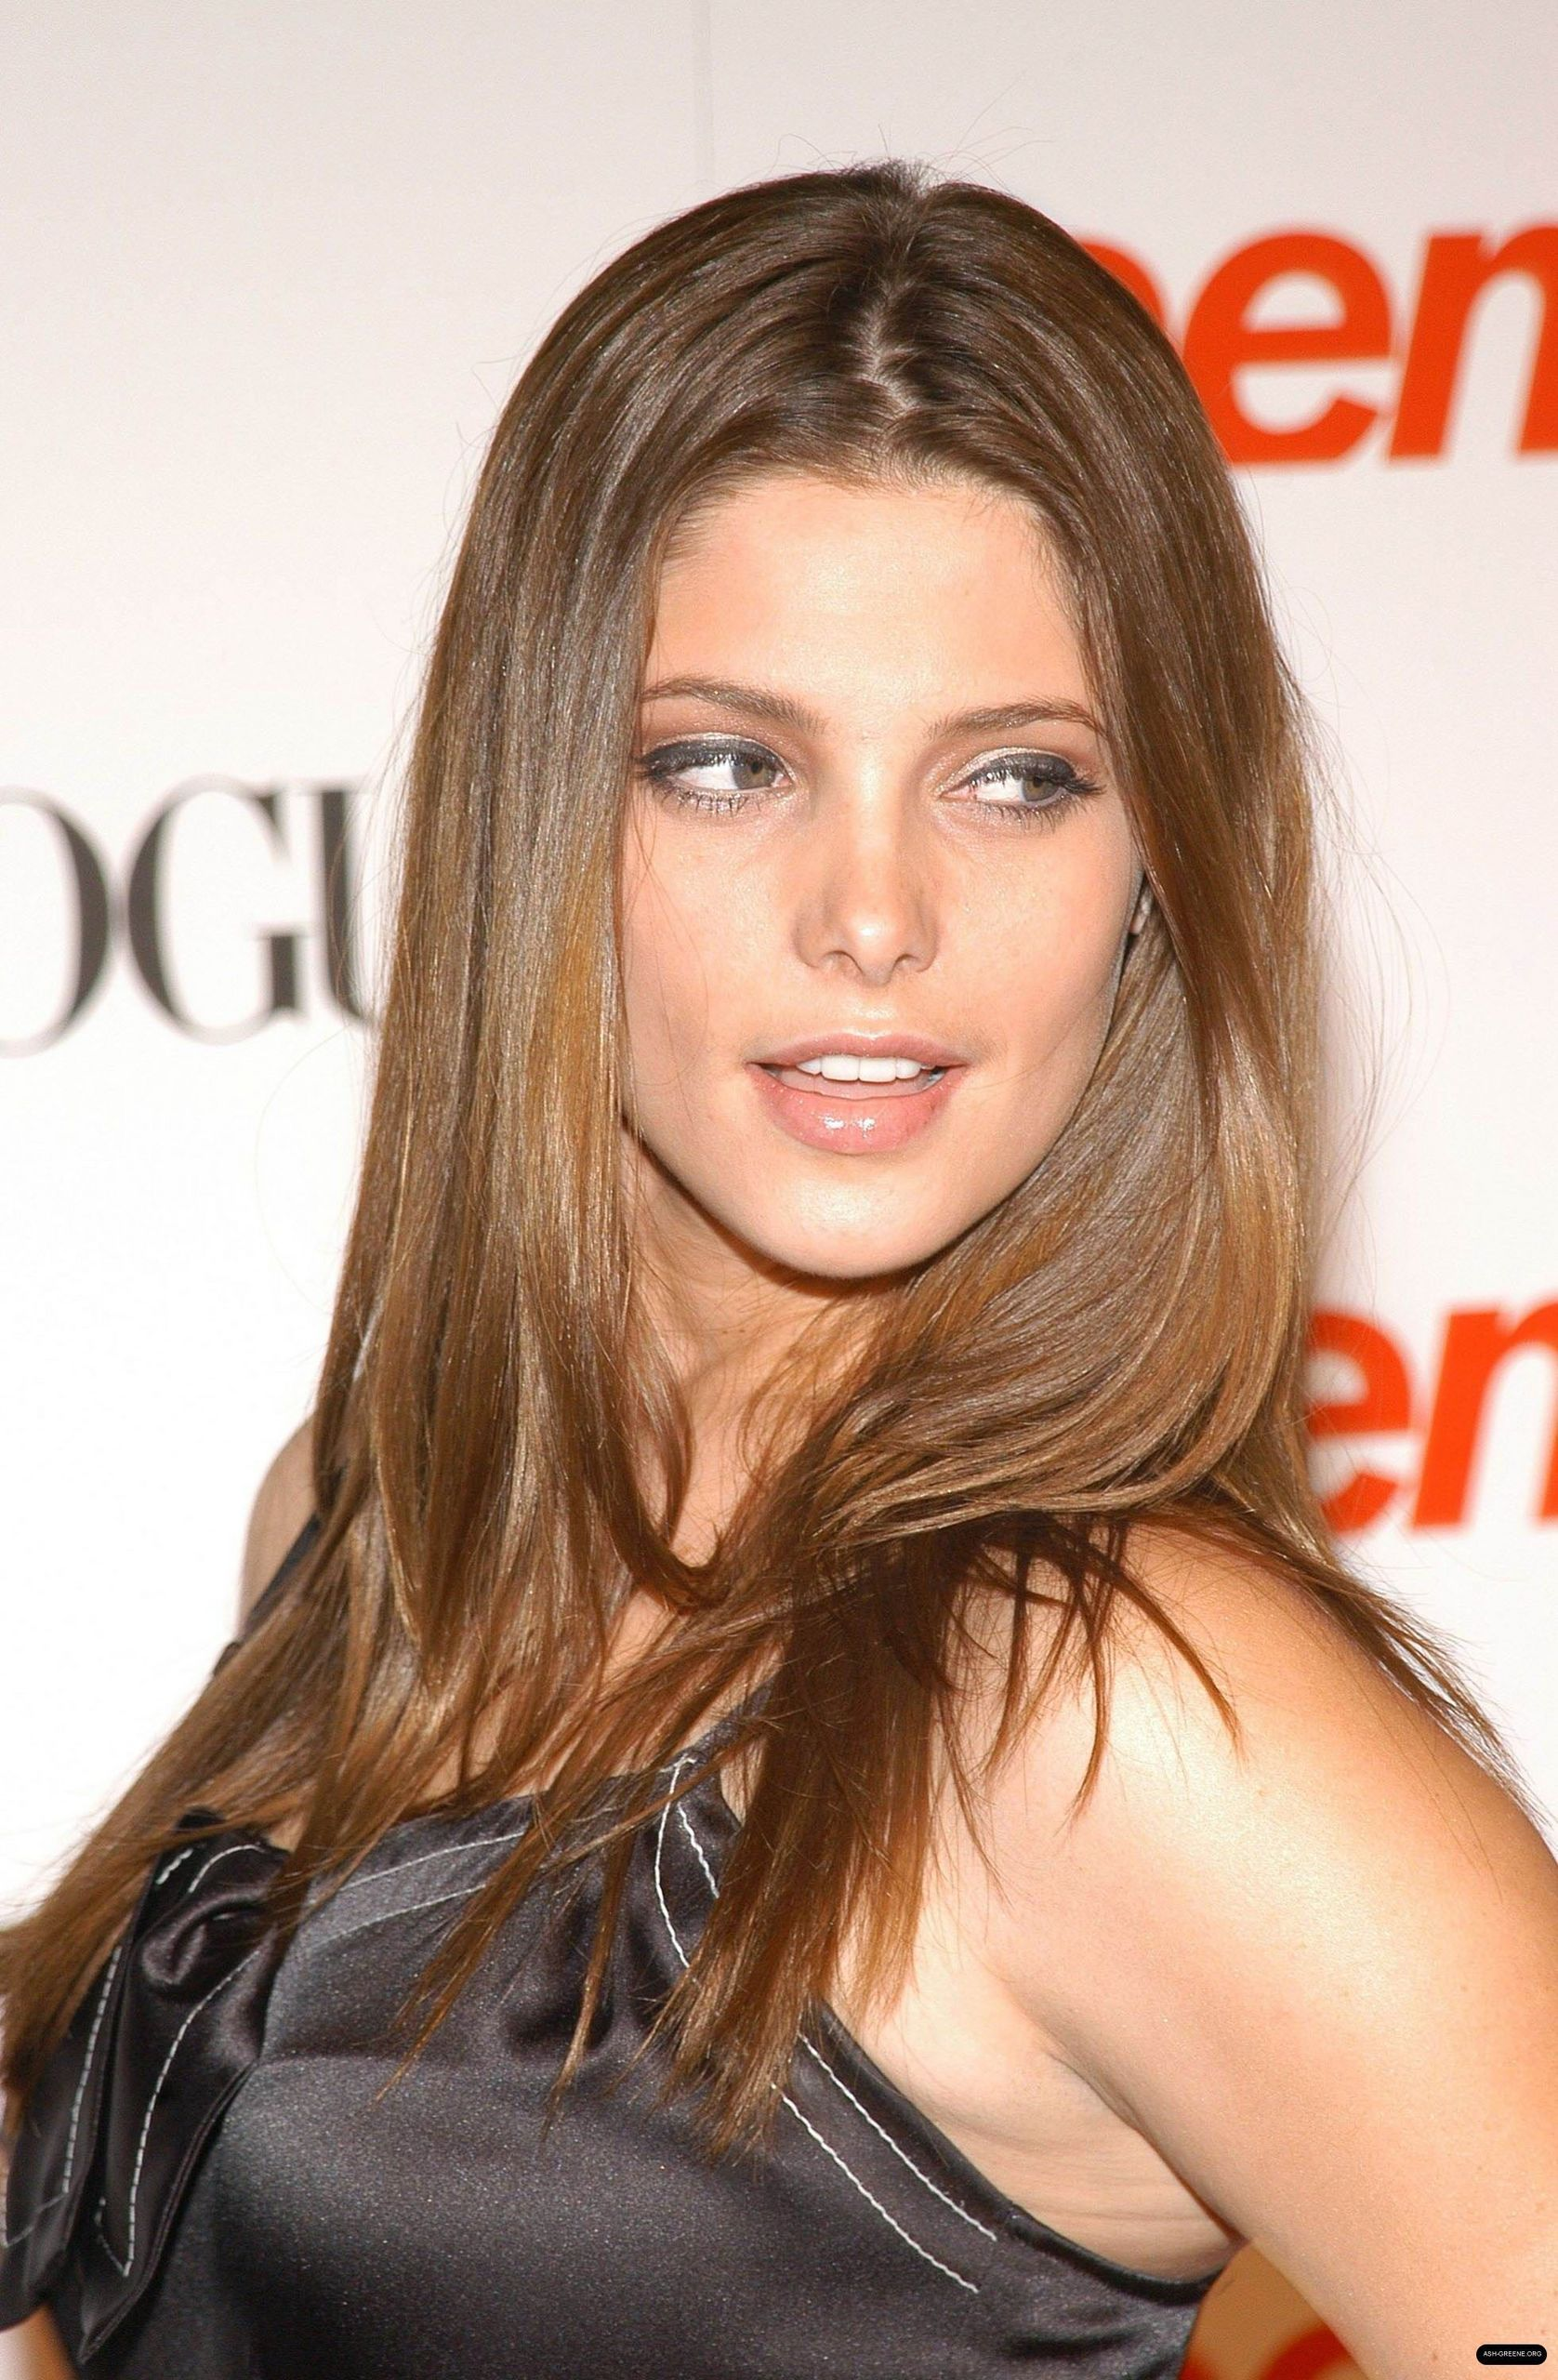 New Photos of Ashley at the 6th Annual Teen Vogue Young Hollywood Party 2008 HQ ashley greene 18879369 1676 2560 Sexy Punk Gothic Fashion Model Stock Photo   754057